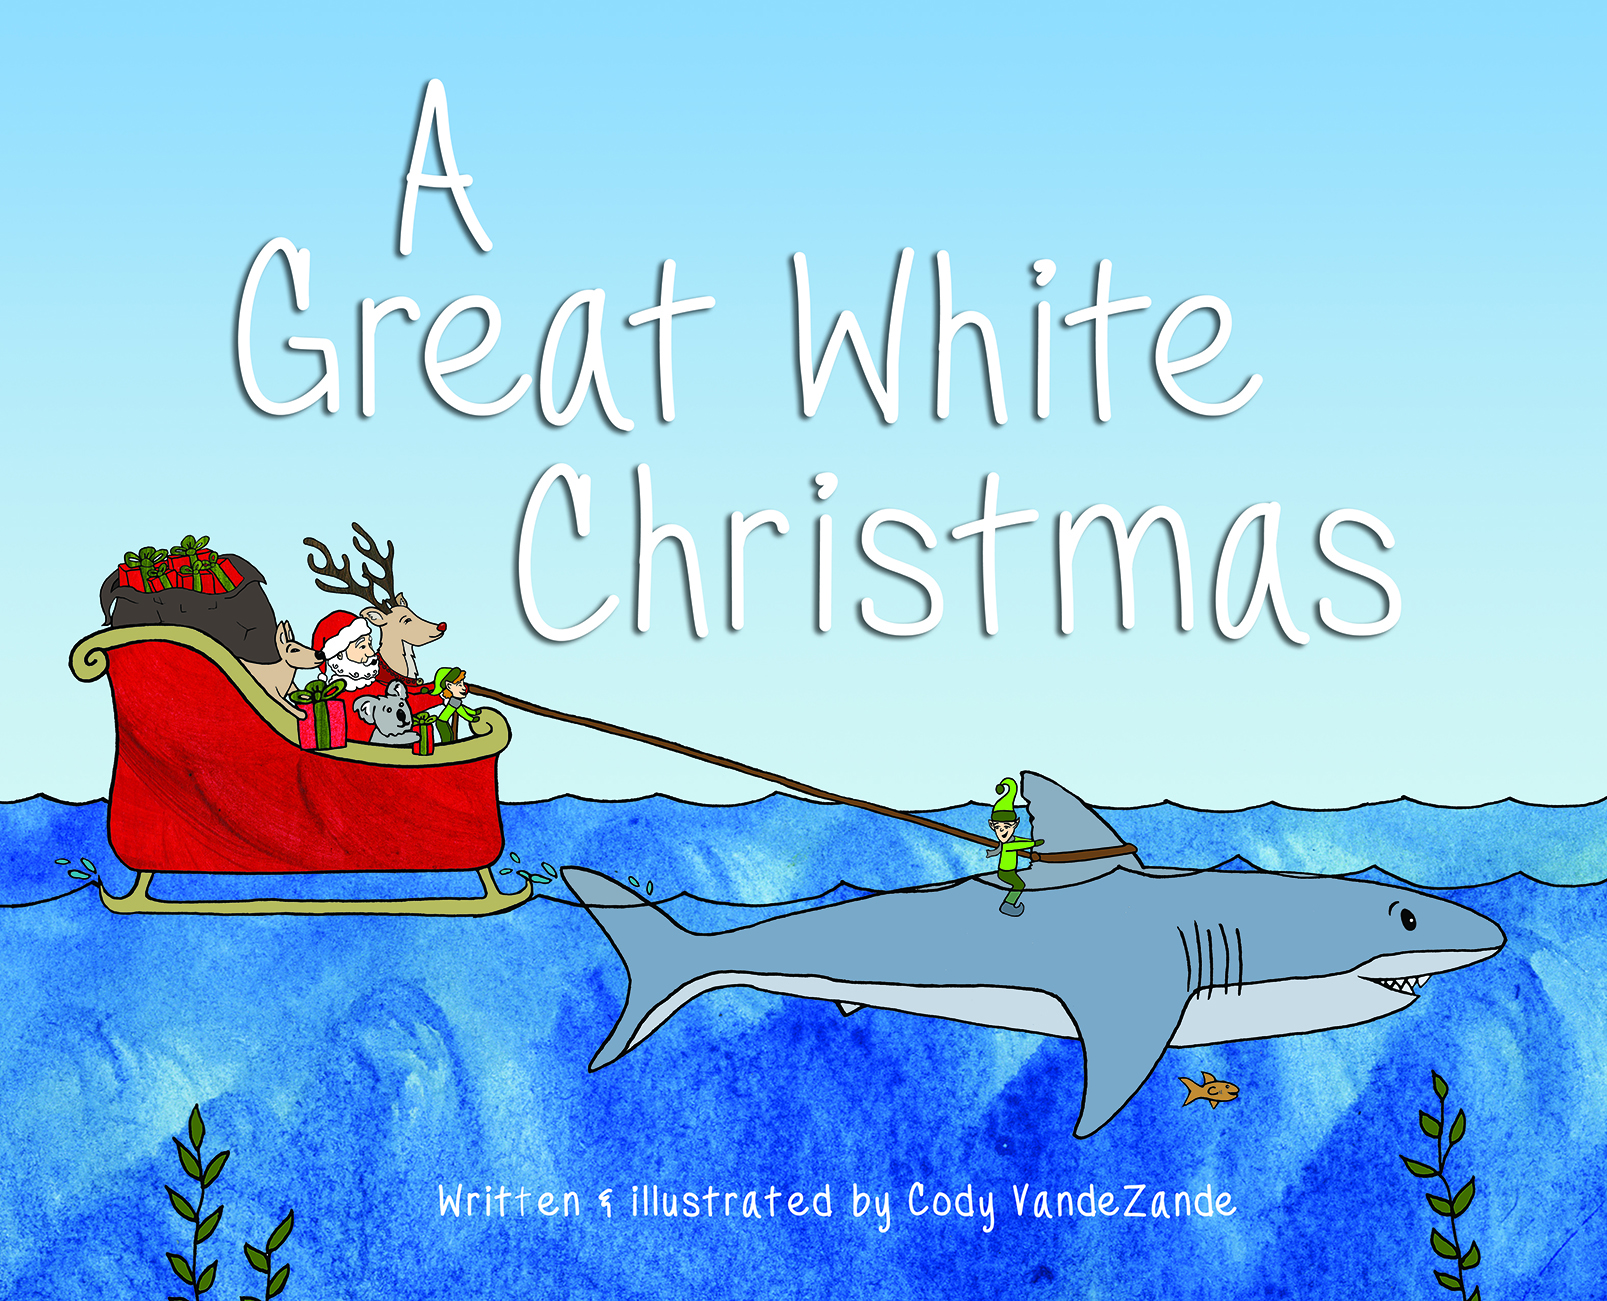 A Great White Christmas   Written and illustrated by Cody VandeZande  As Santa heads out to deliver gifts on Christmas Eve, he encounters trouble over Australia. Unexpected friends arrive to help save the day, and along the way Santa learns a valuable lesson. Join Santa, Oli, and the rest of the crew in this unique Christmas tale!   Reading level:  Grades 1-2   Enjoyment level:  Everyone will enjoy this book with colorful illustrations and unique story involving a great white shark and Santa!   Hardcover  38 pages   ISBN:  978-1-63177-433-1  $14.95